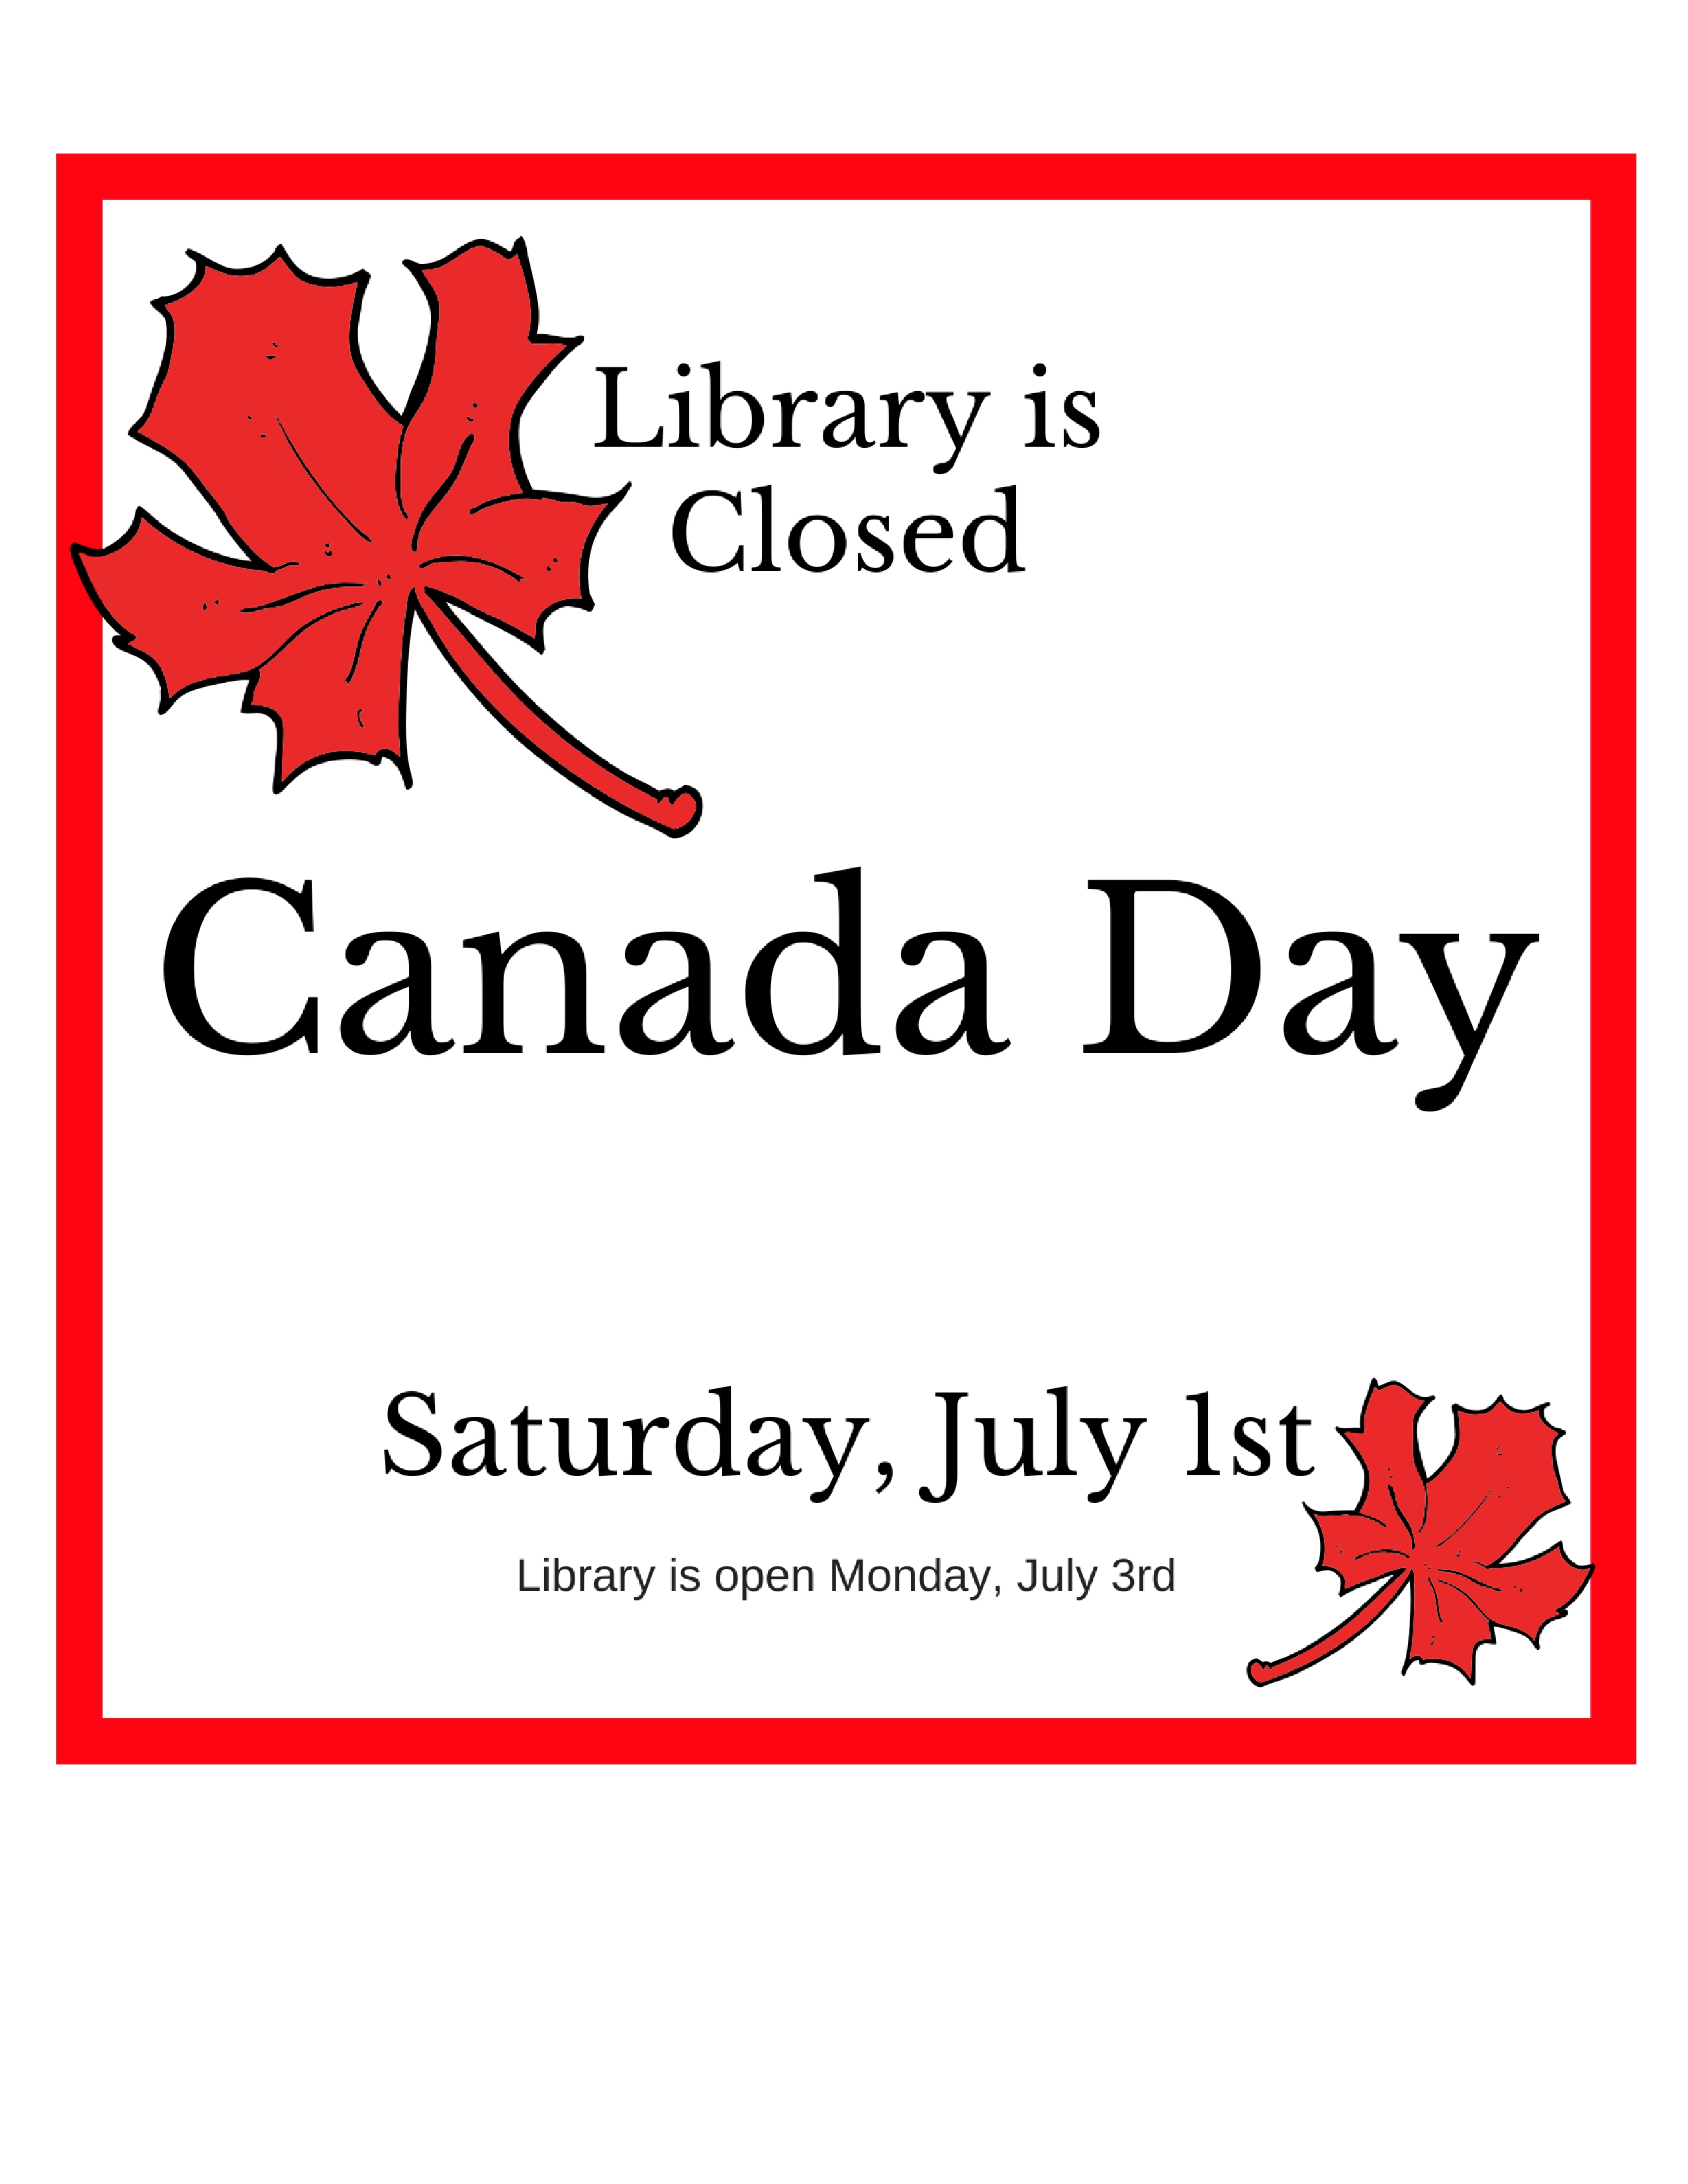 Canada Day Closure @ Smithers Public Library